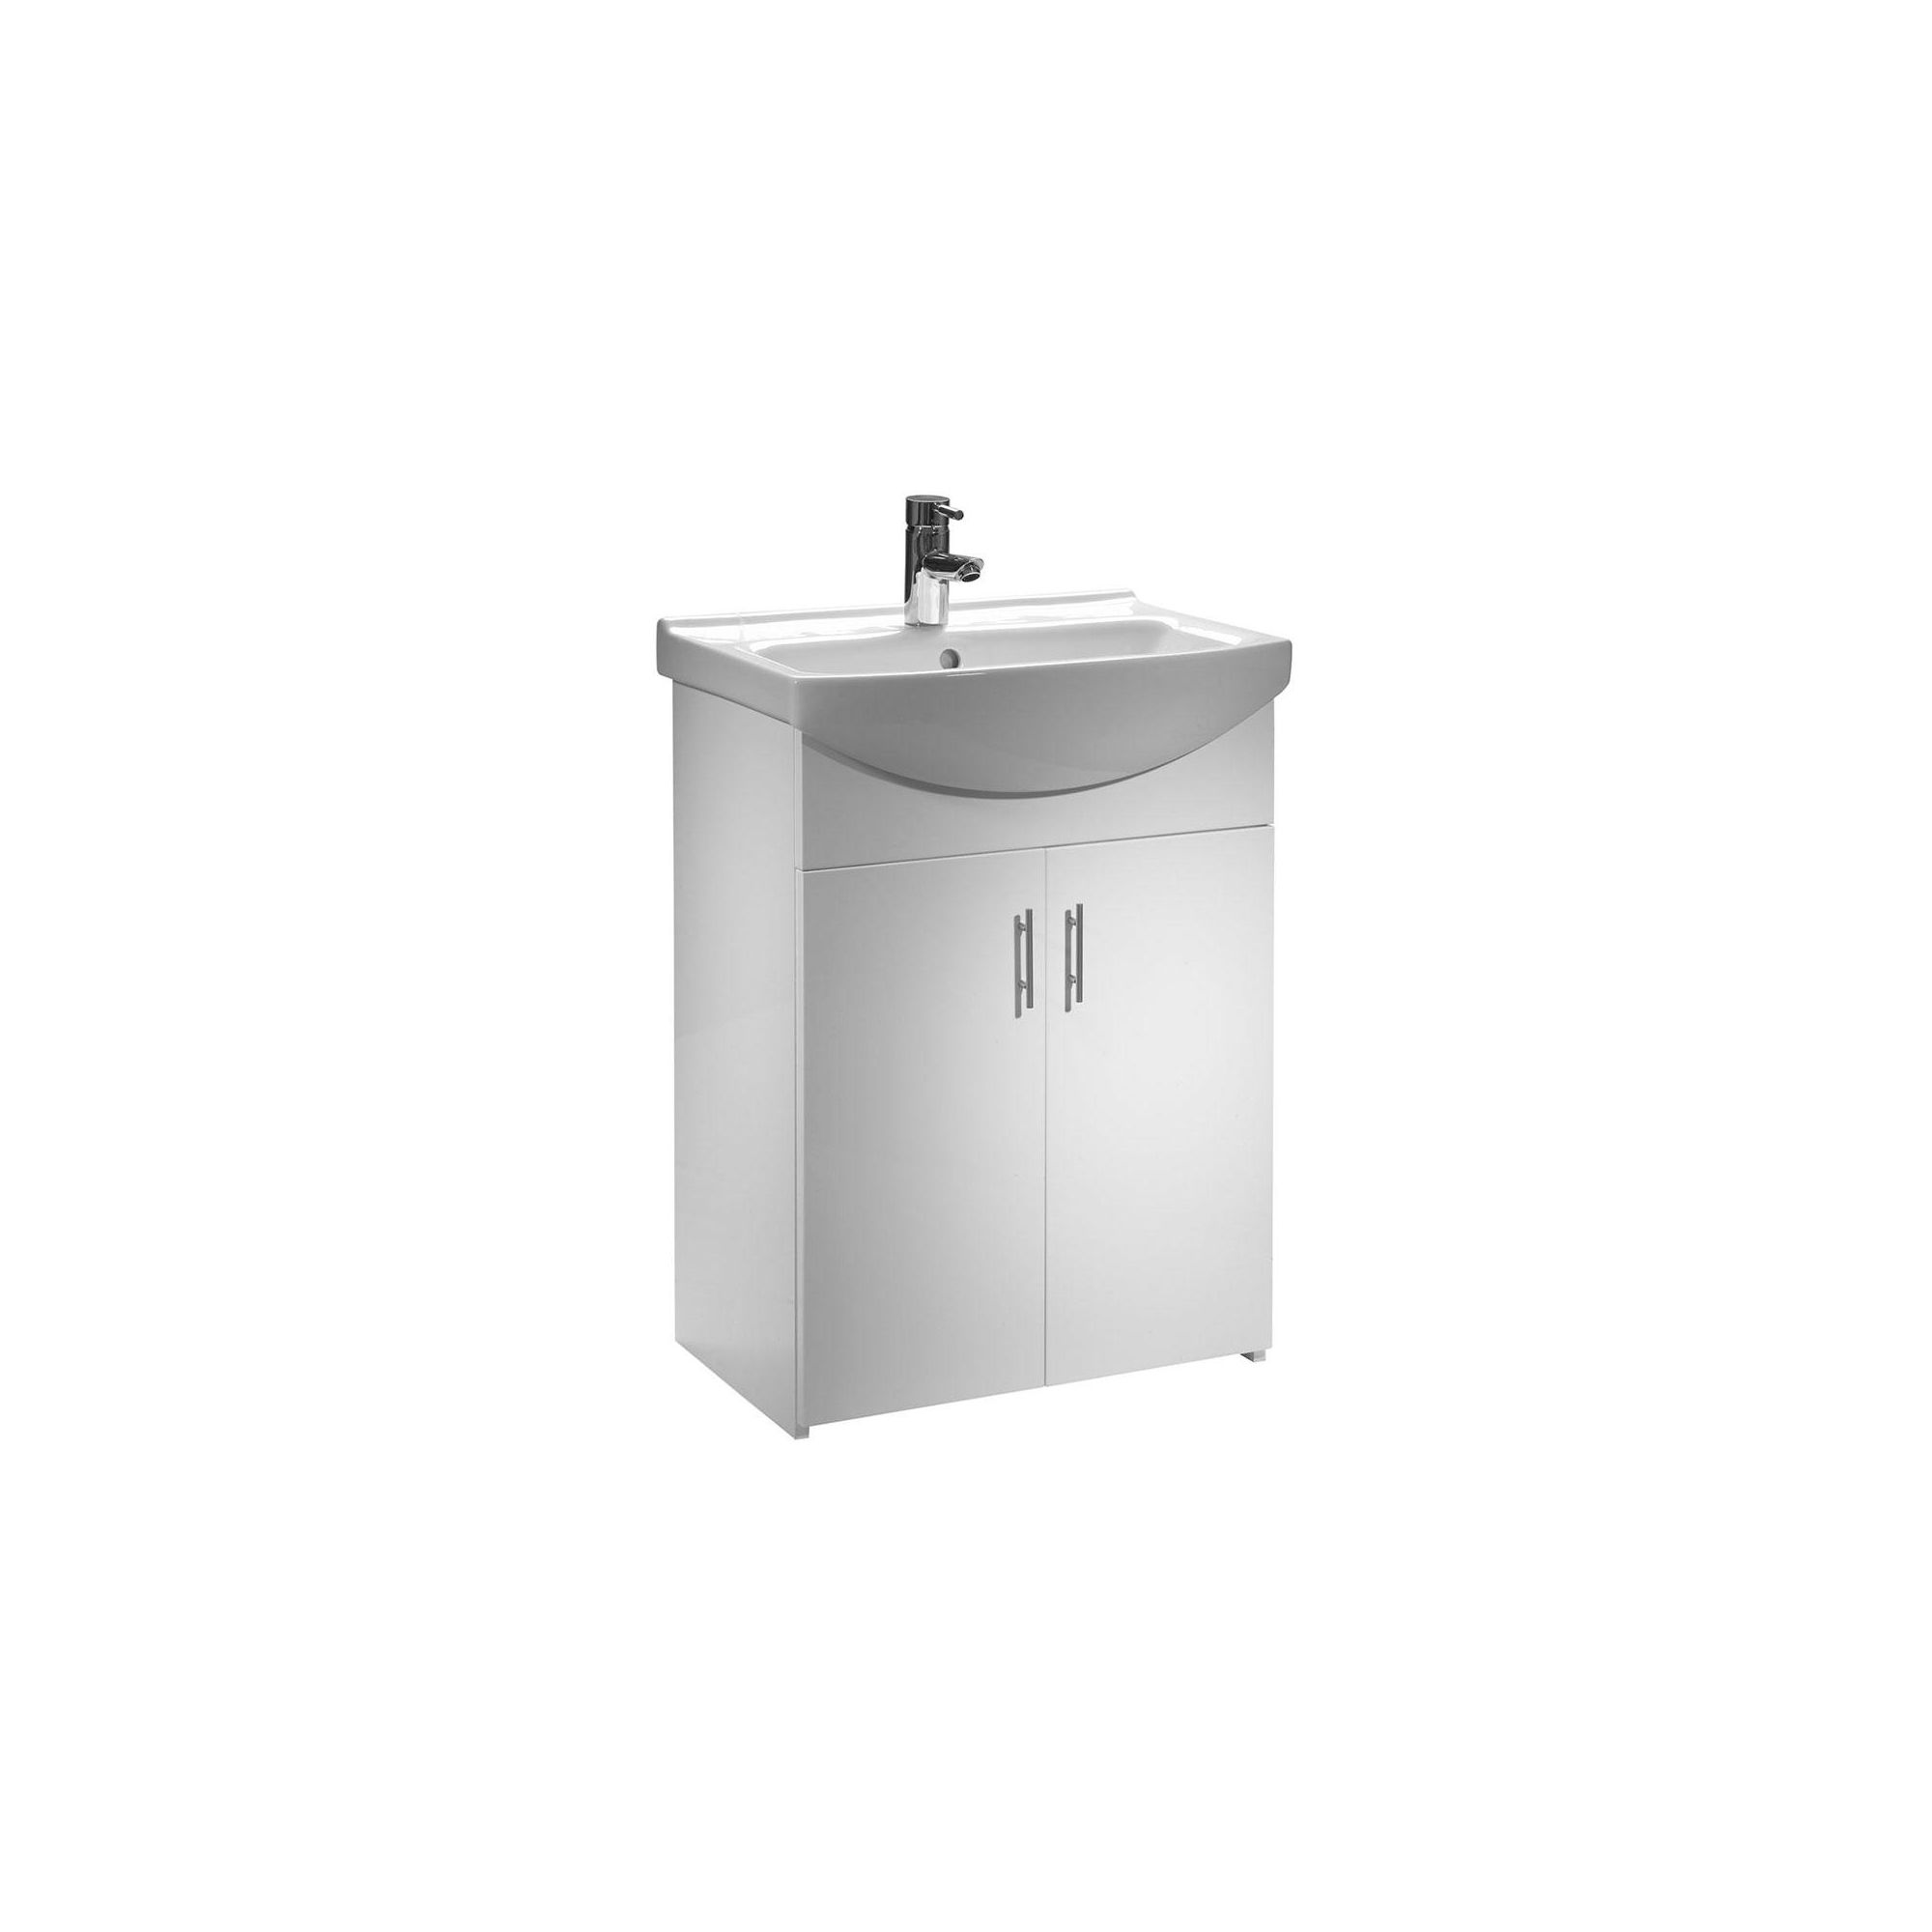 Tavistock Opal White Floor Standing Cabinet and Basin - 1 Tap Hole - 600mm Wide